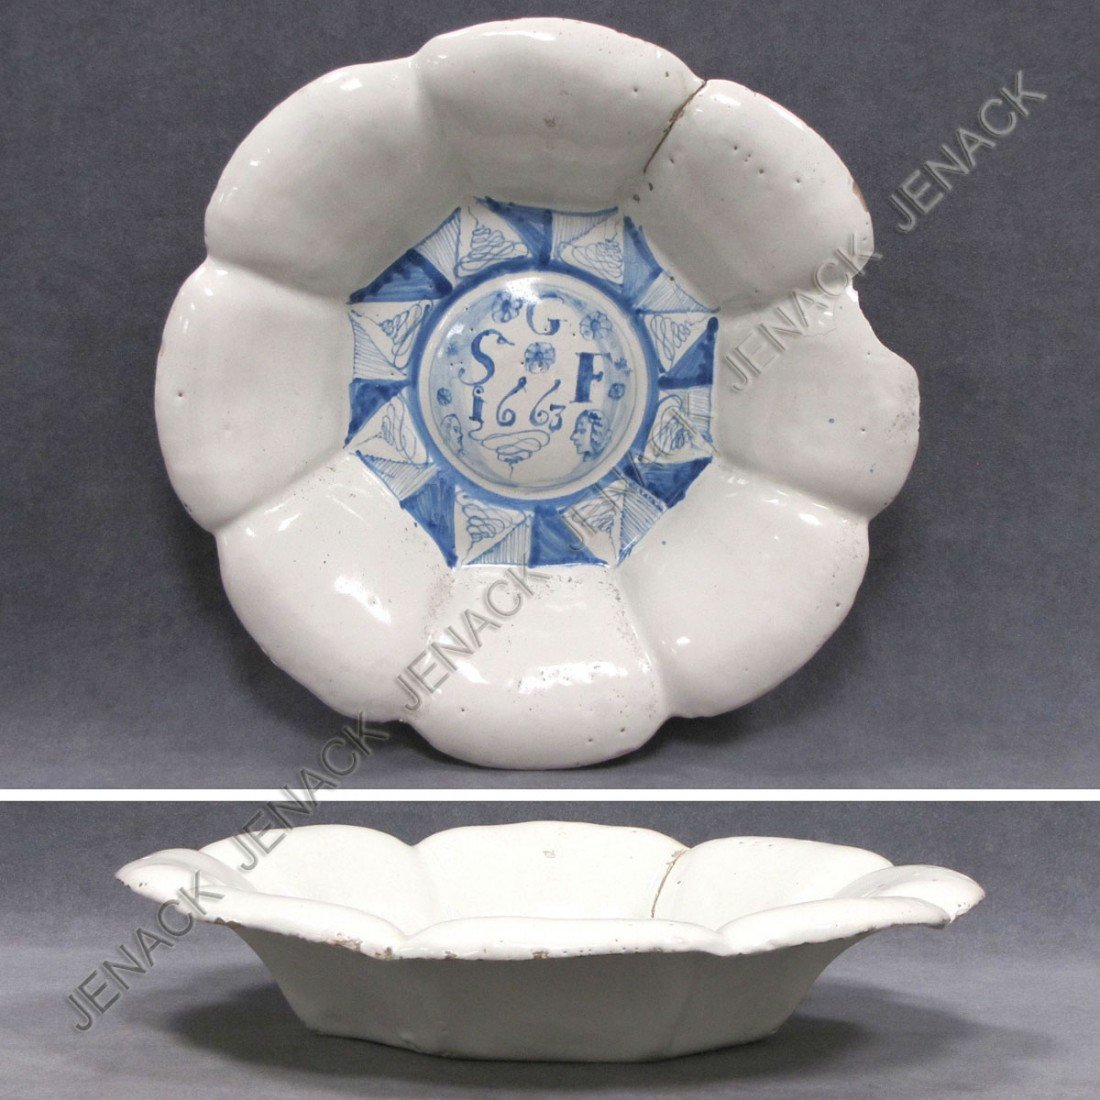 22: ENGLISH DELFT LOBED BOWL, C.1663